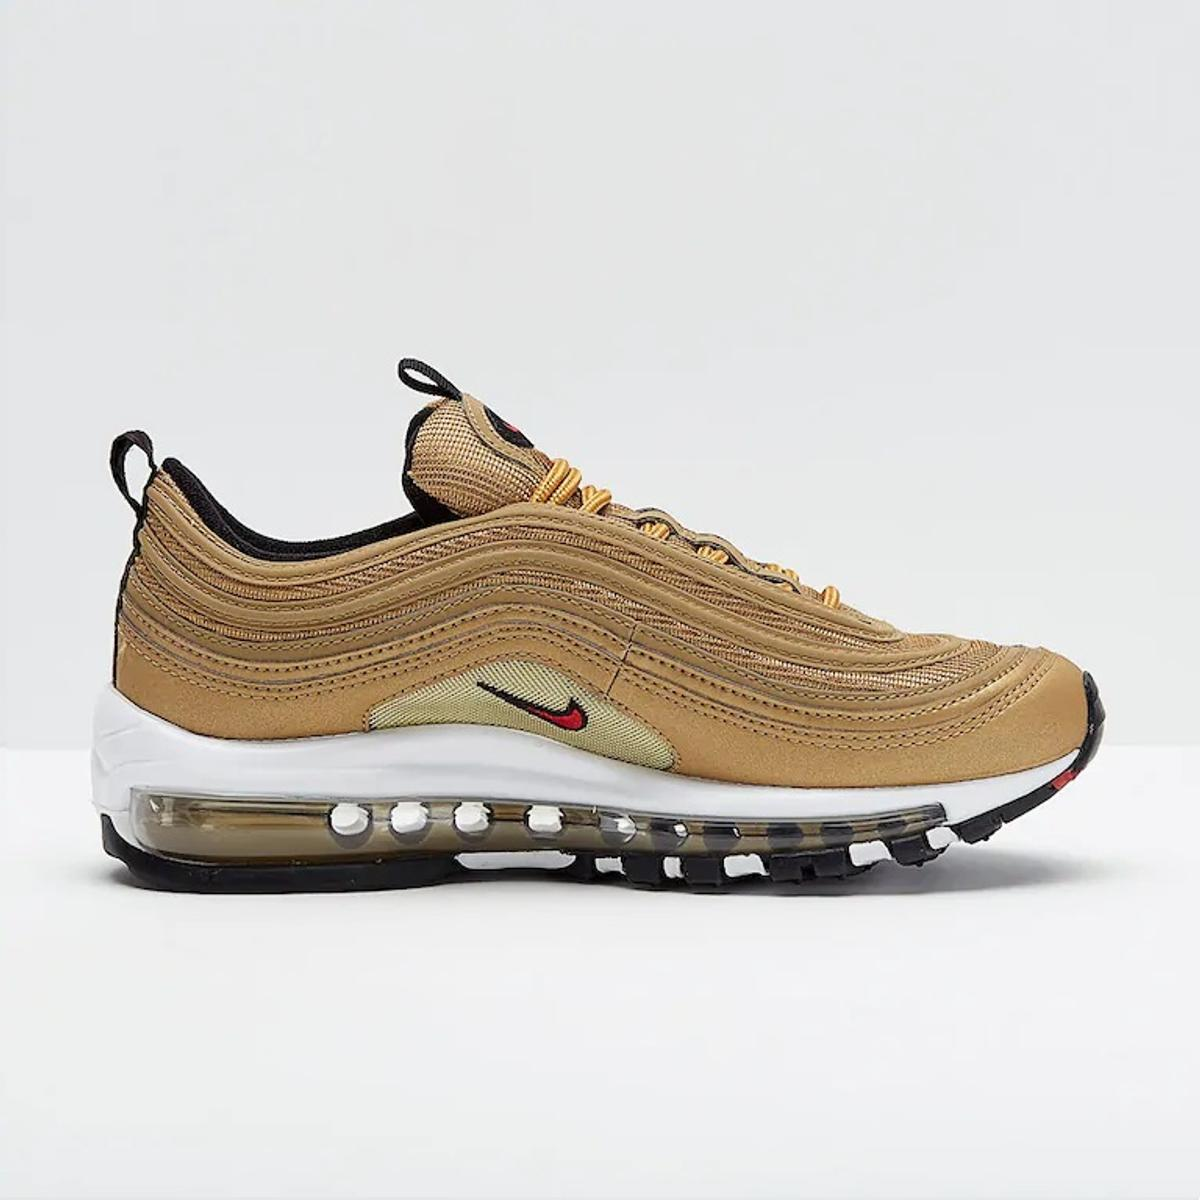 eac6019813 Nike Air Max 97 Gold in Swansea for £65.00 for sale - Shpock